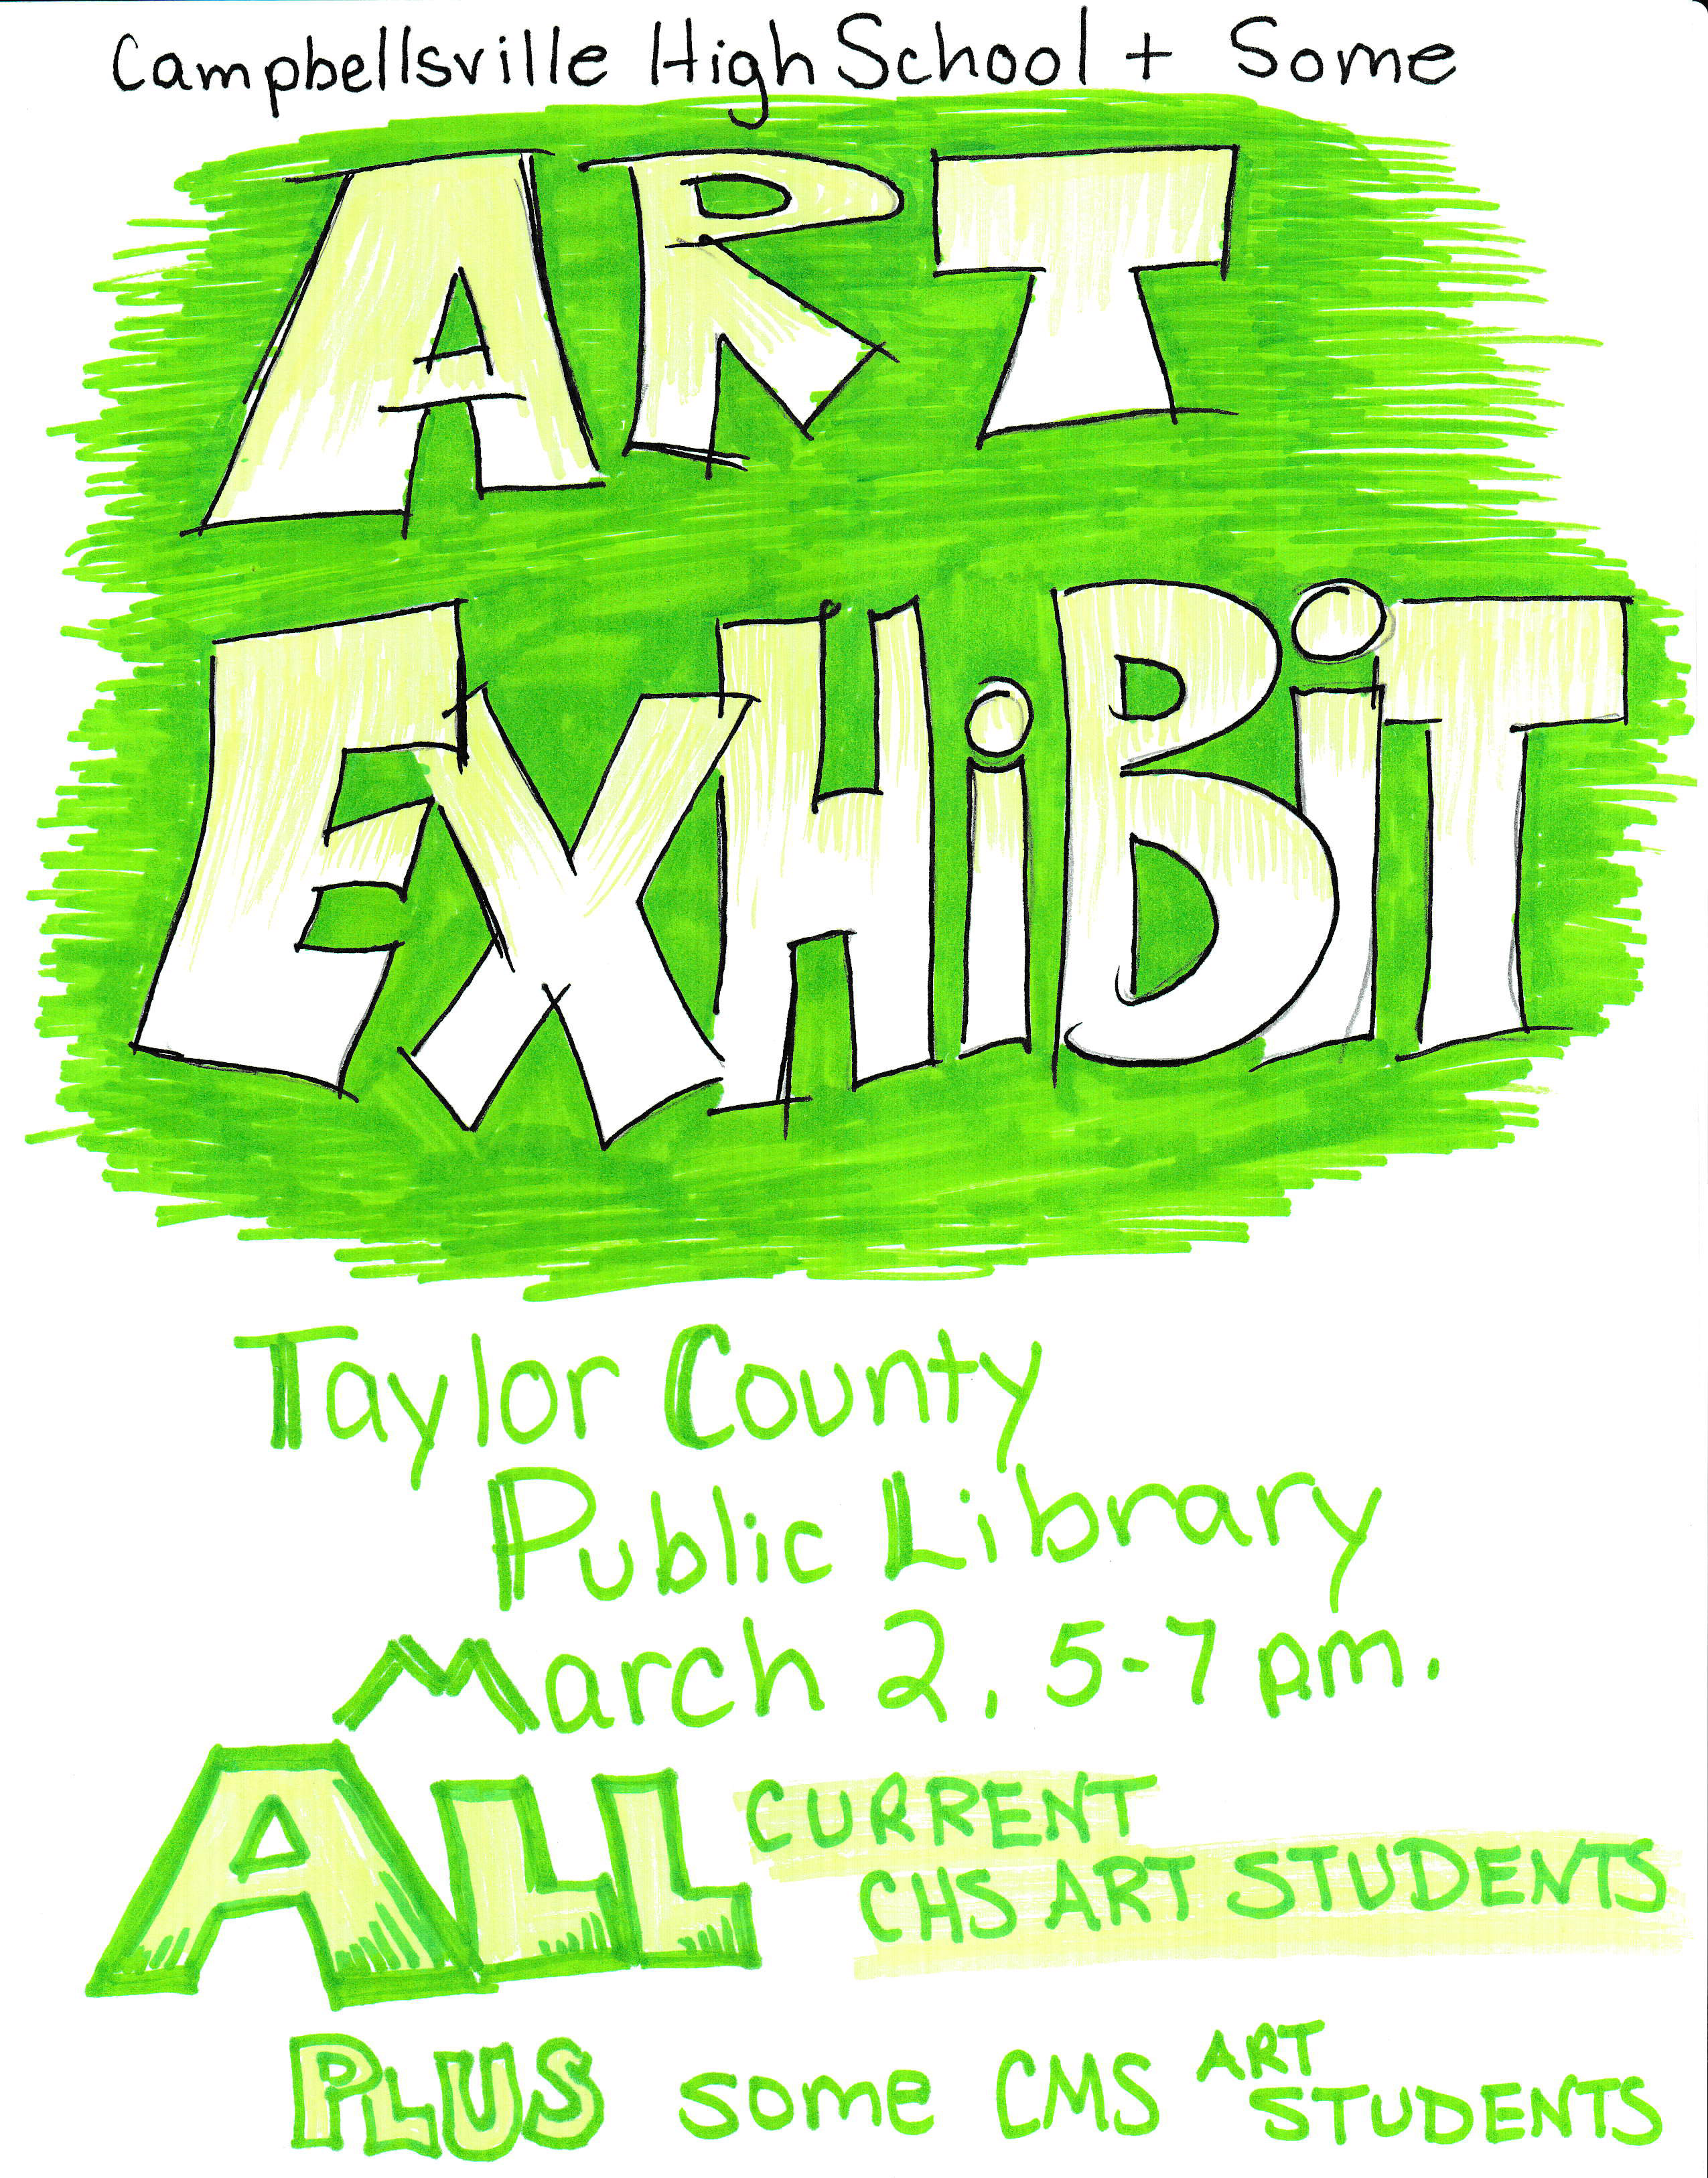 CMS CHS Art Exhibit